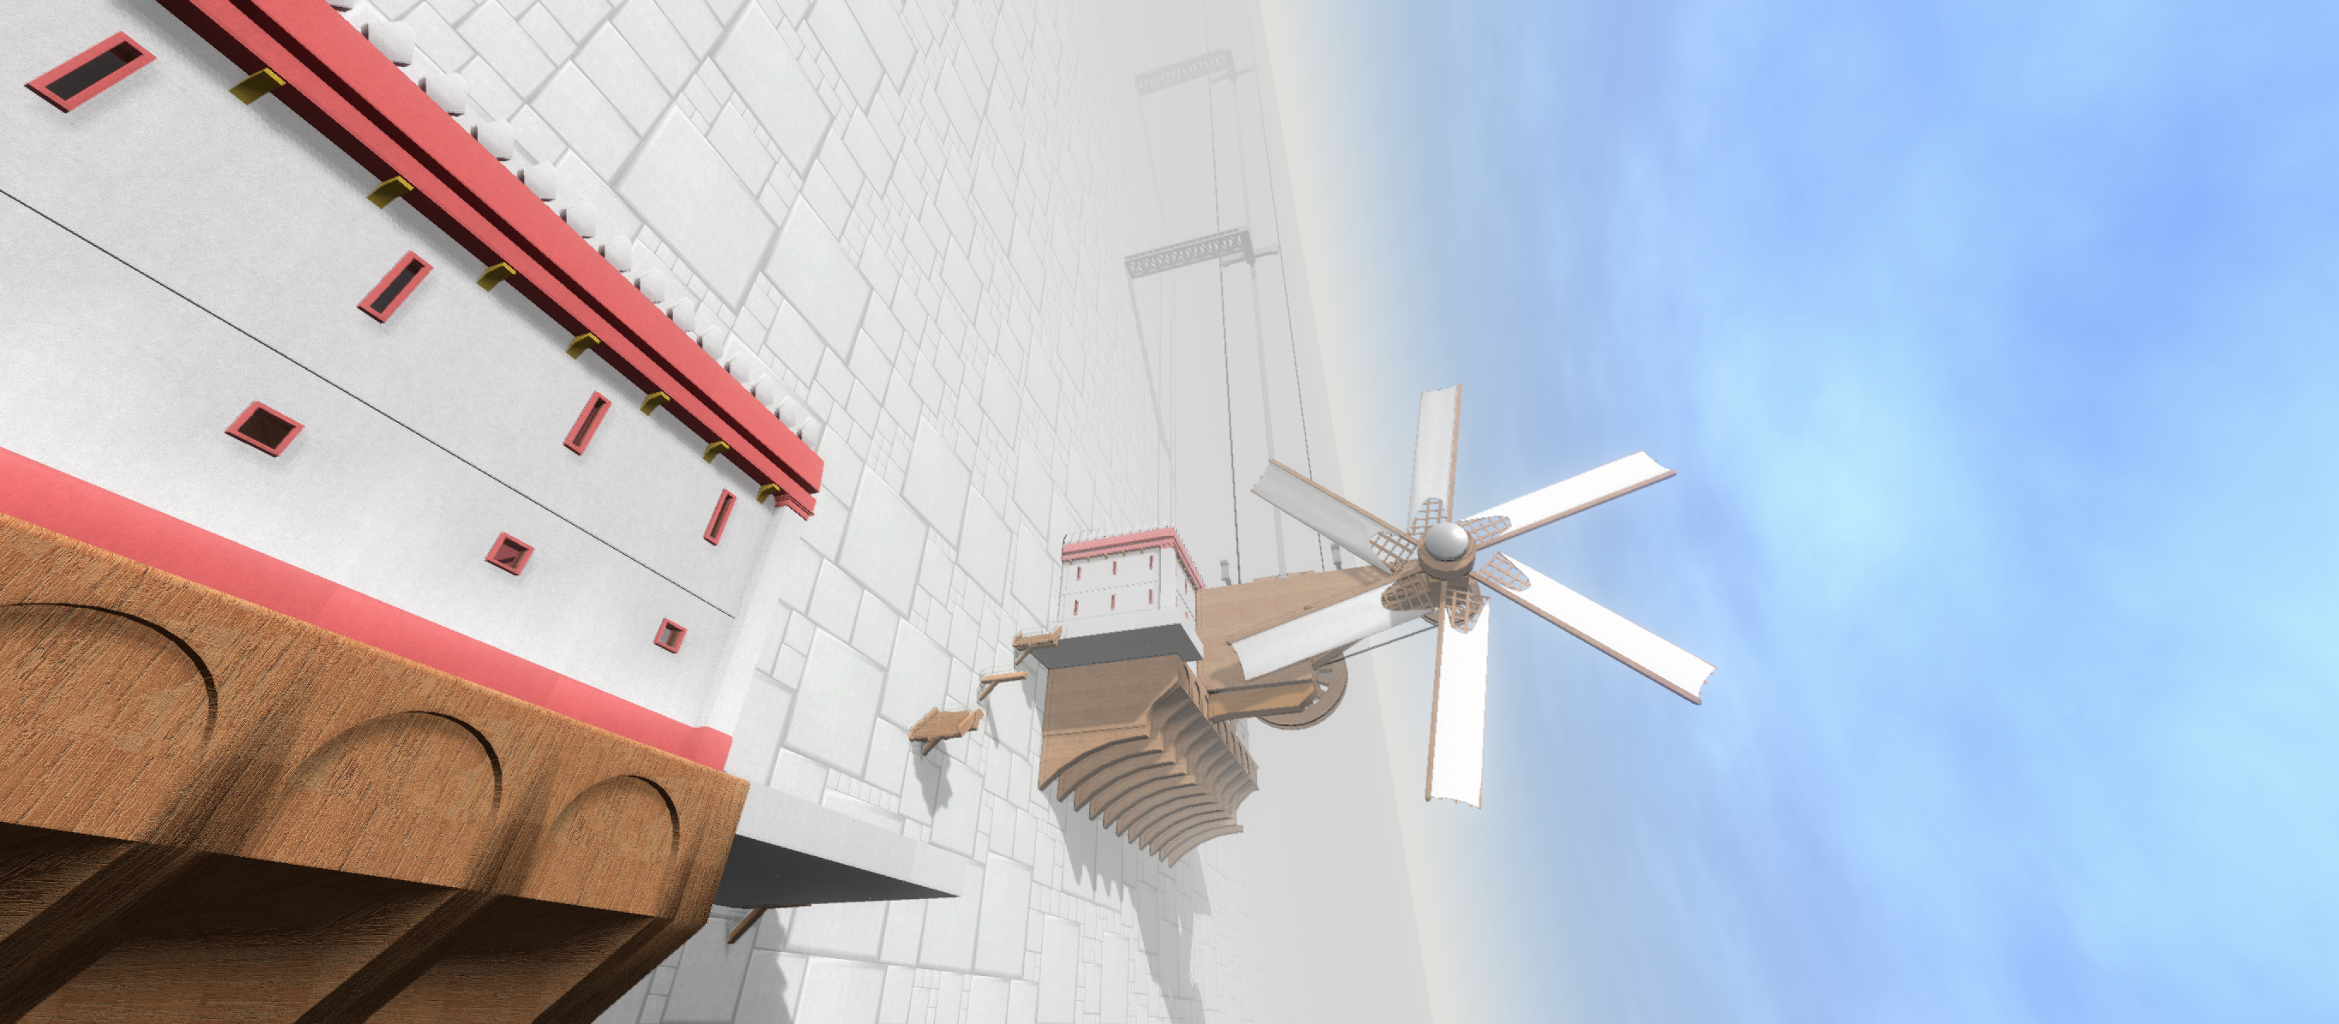 Against-the-Wall-Windmill-Aug-2013